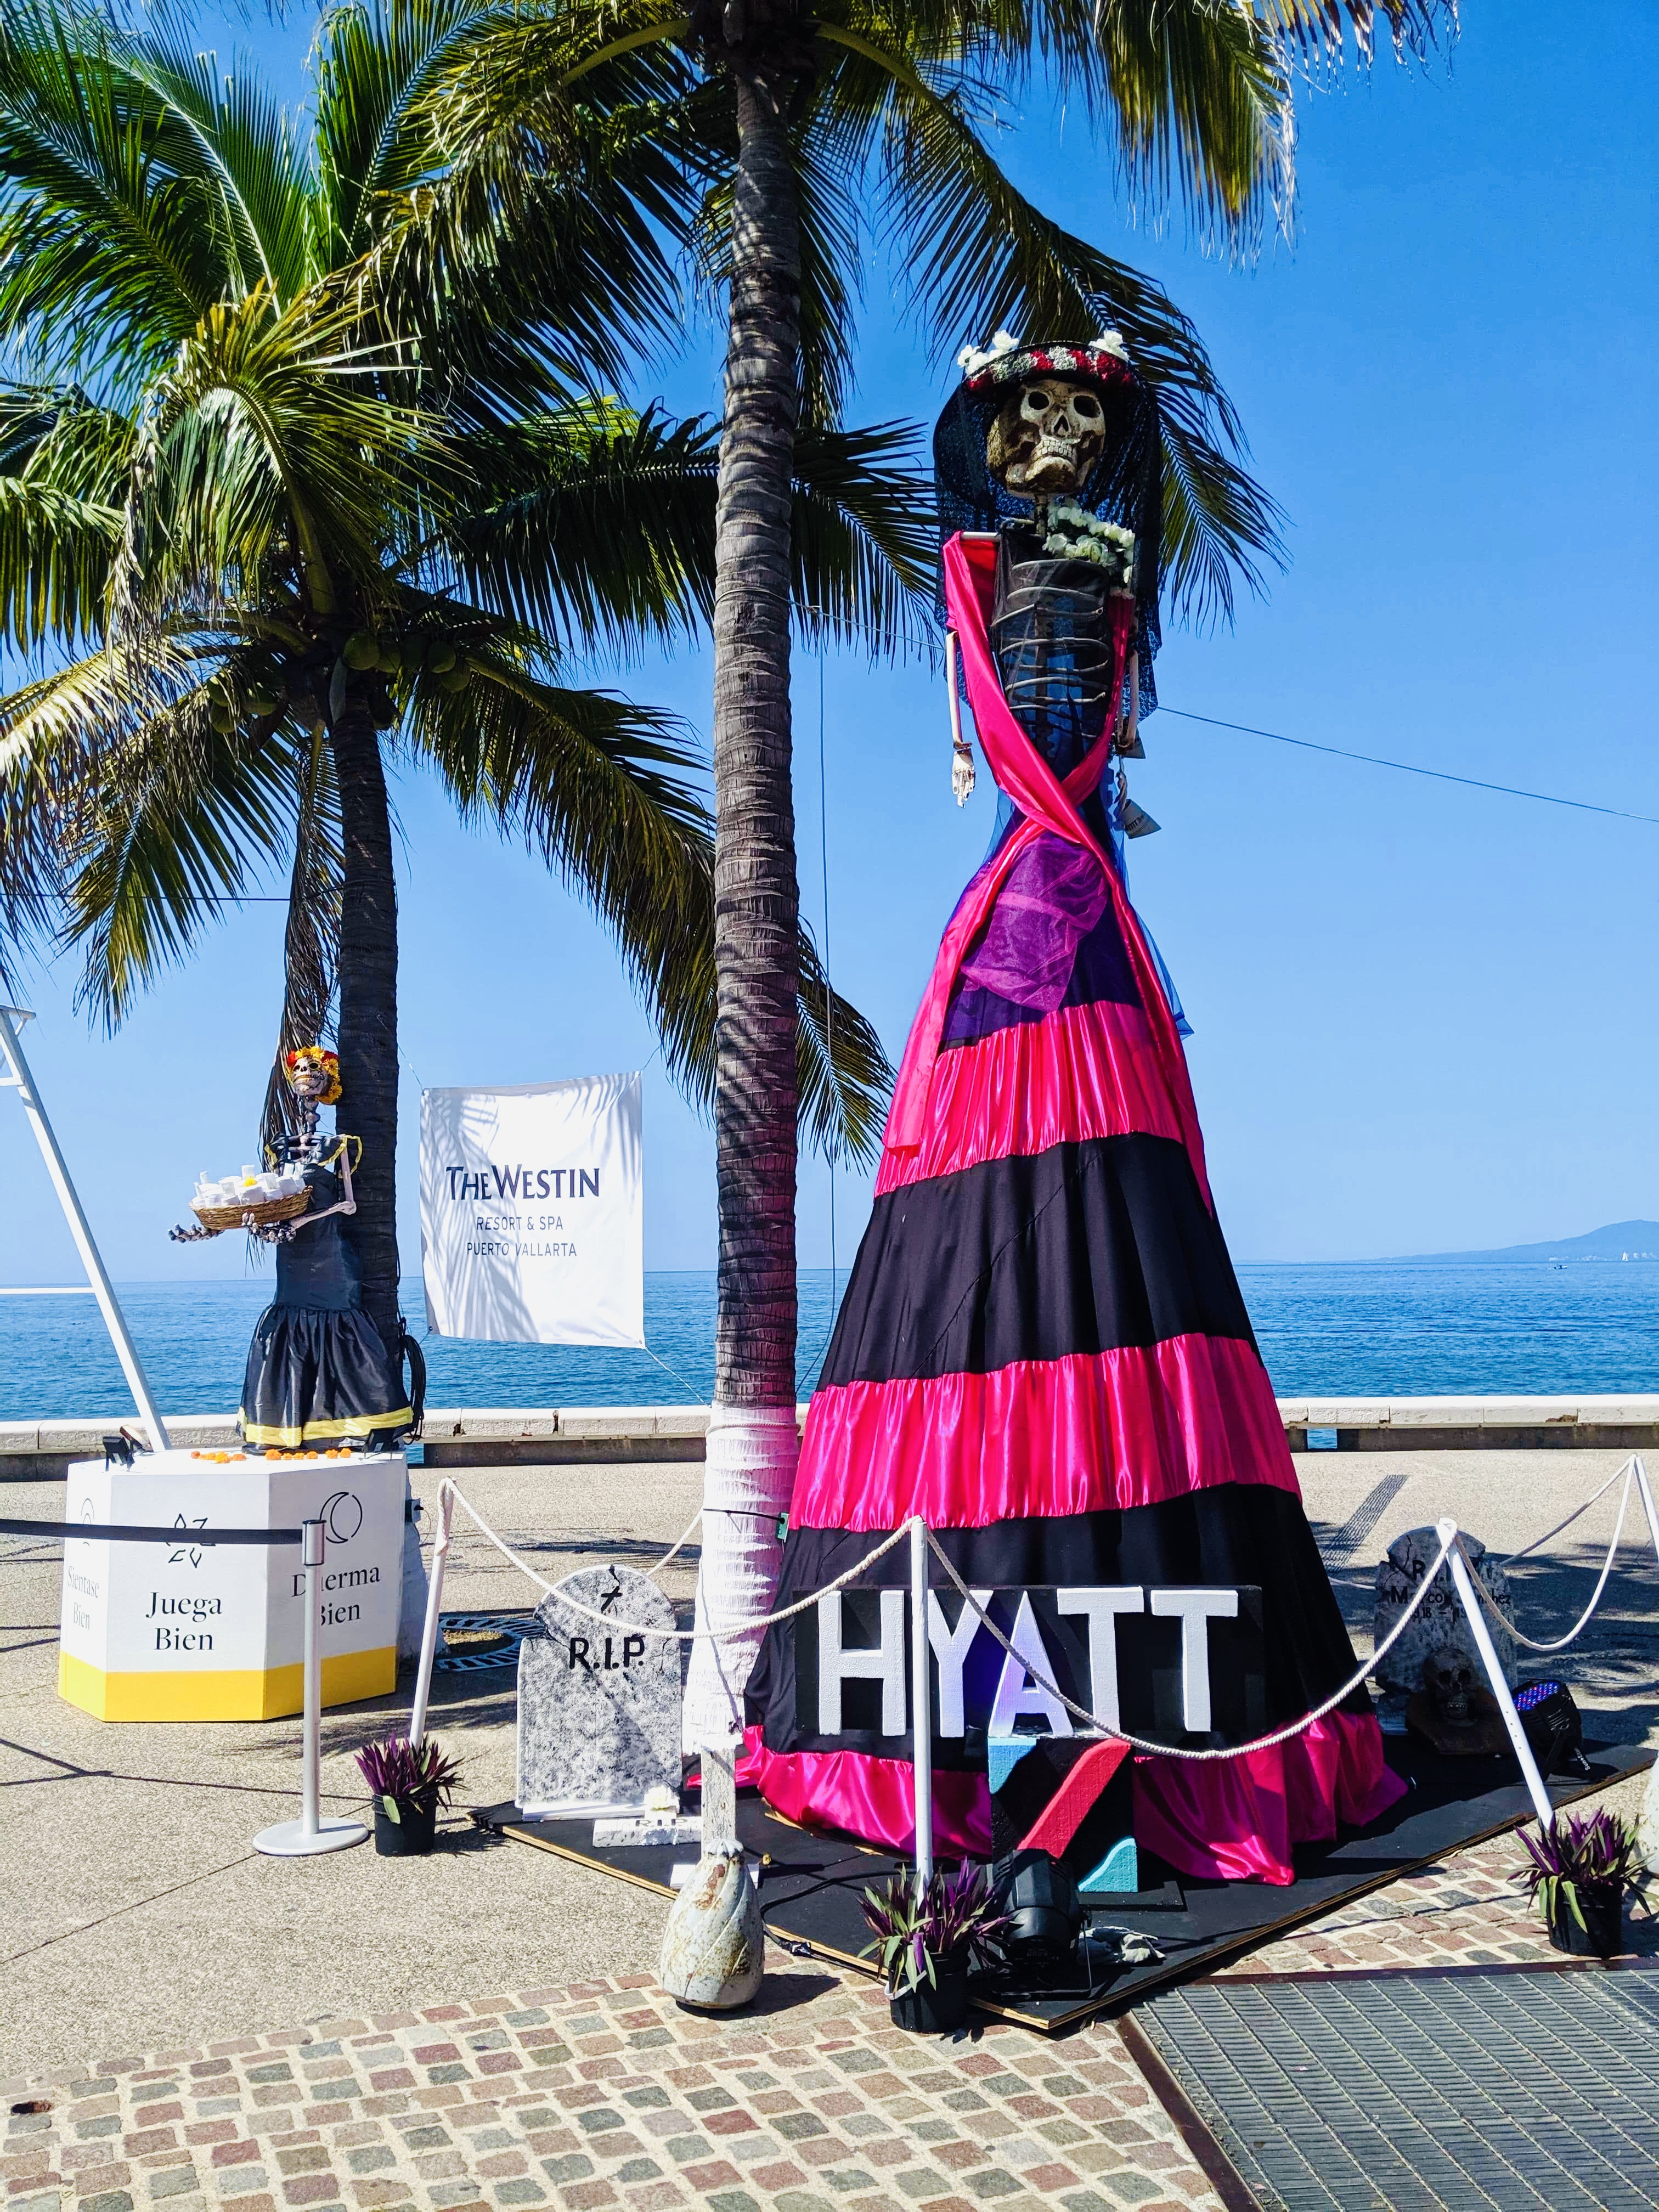 Hyatt Day of the Dead skeleton dressed up on Malecon, with ocean in background. Best places to spend Dia de Los Muertos